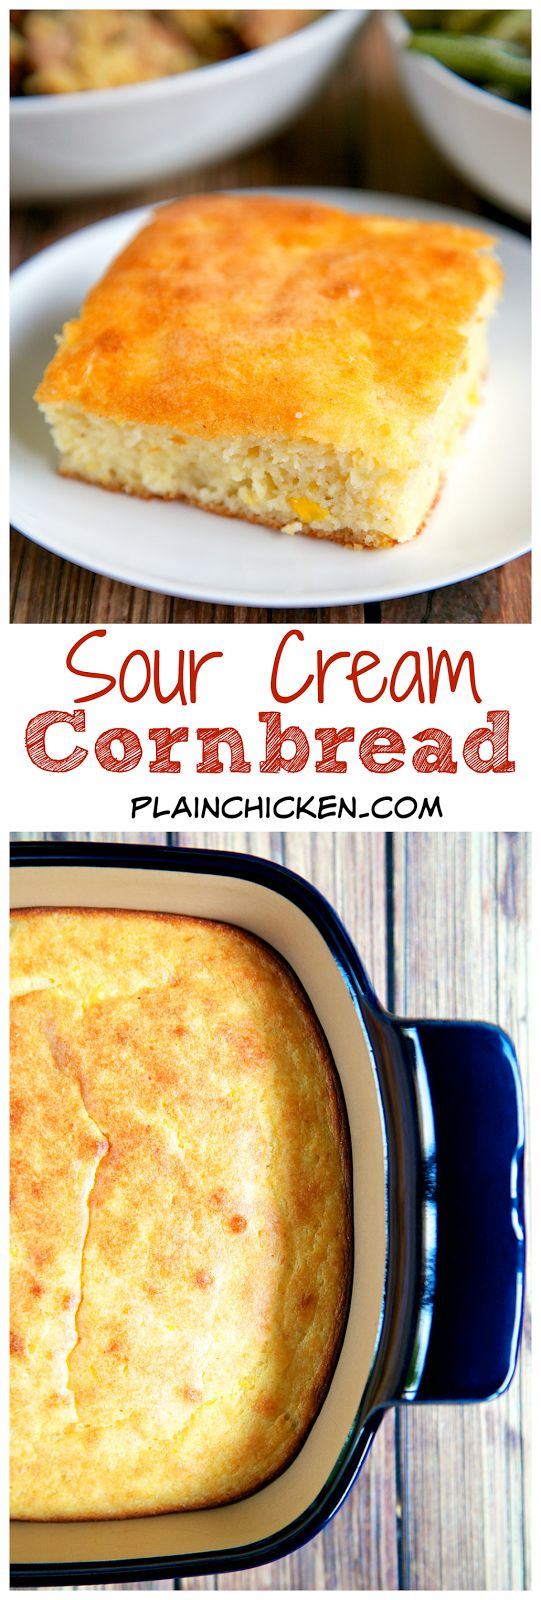 sour cream cornbread sour cream cornbread best cornbread recipe ...